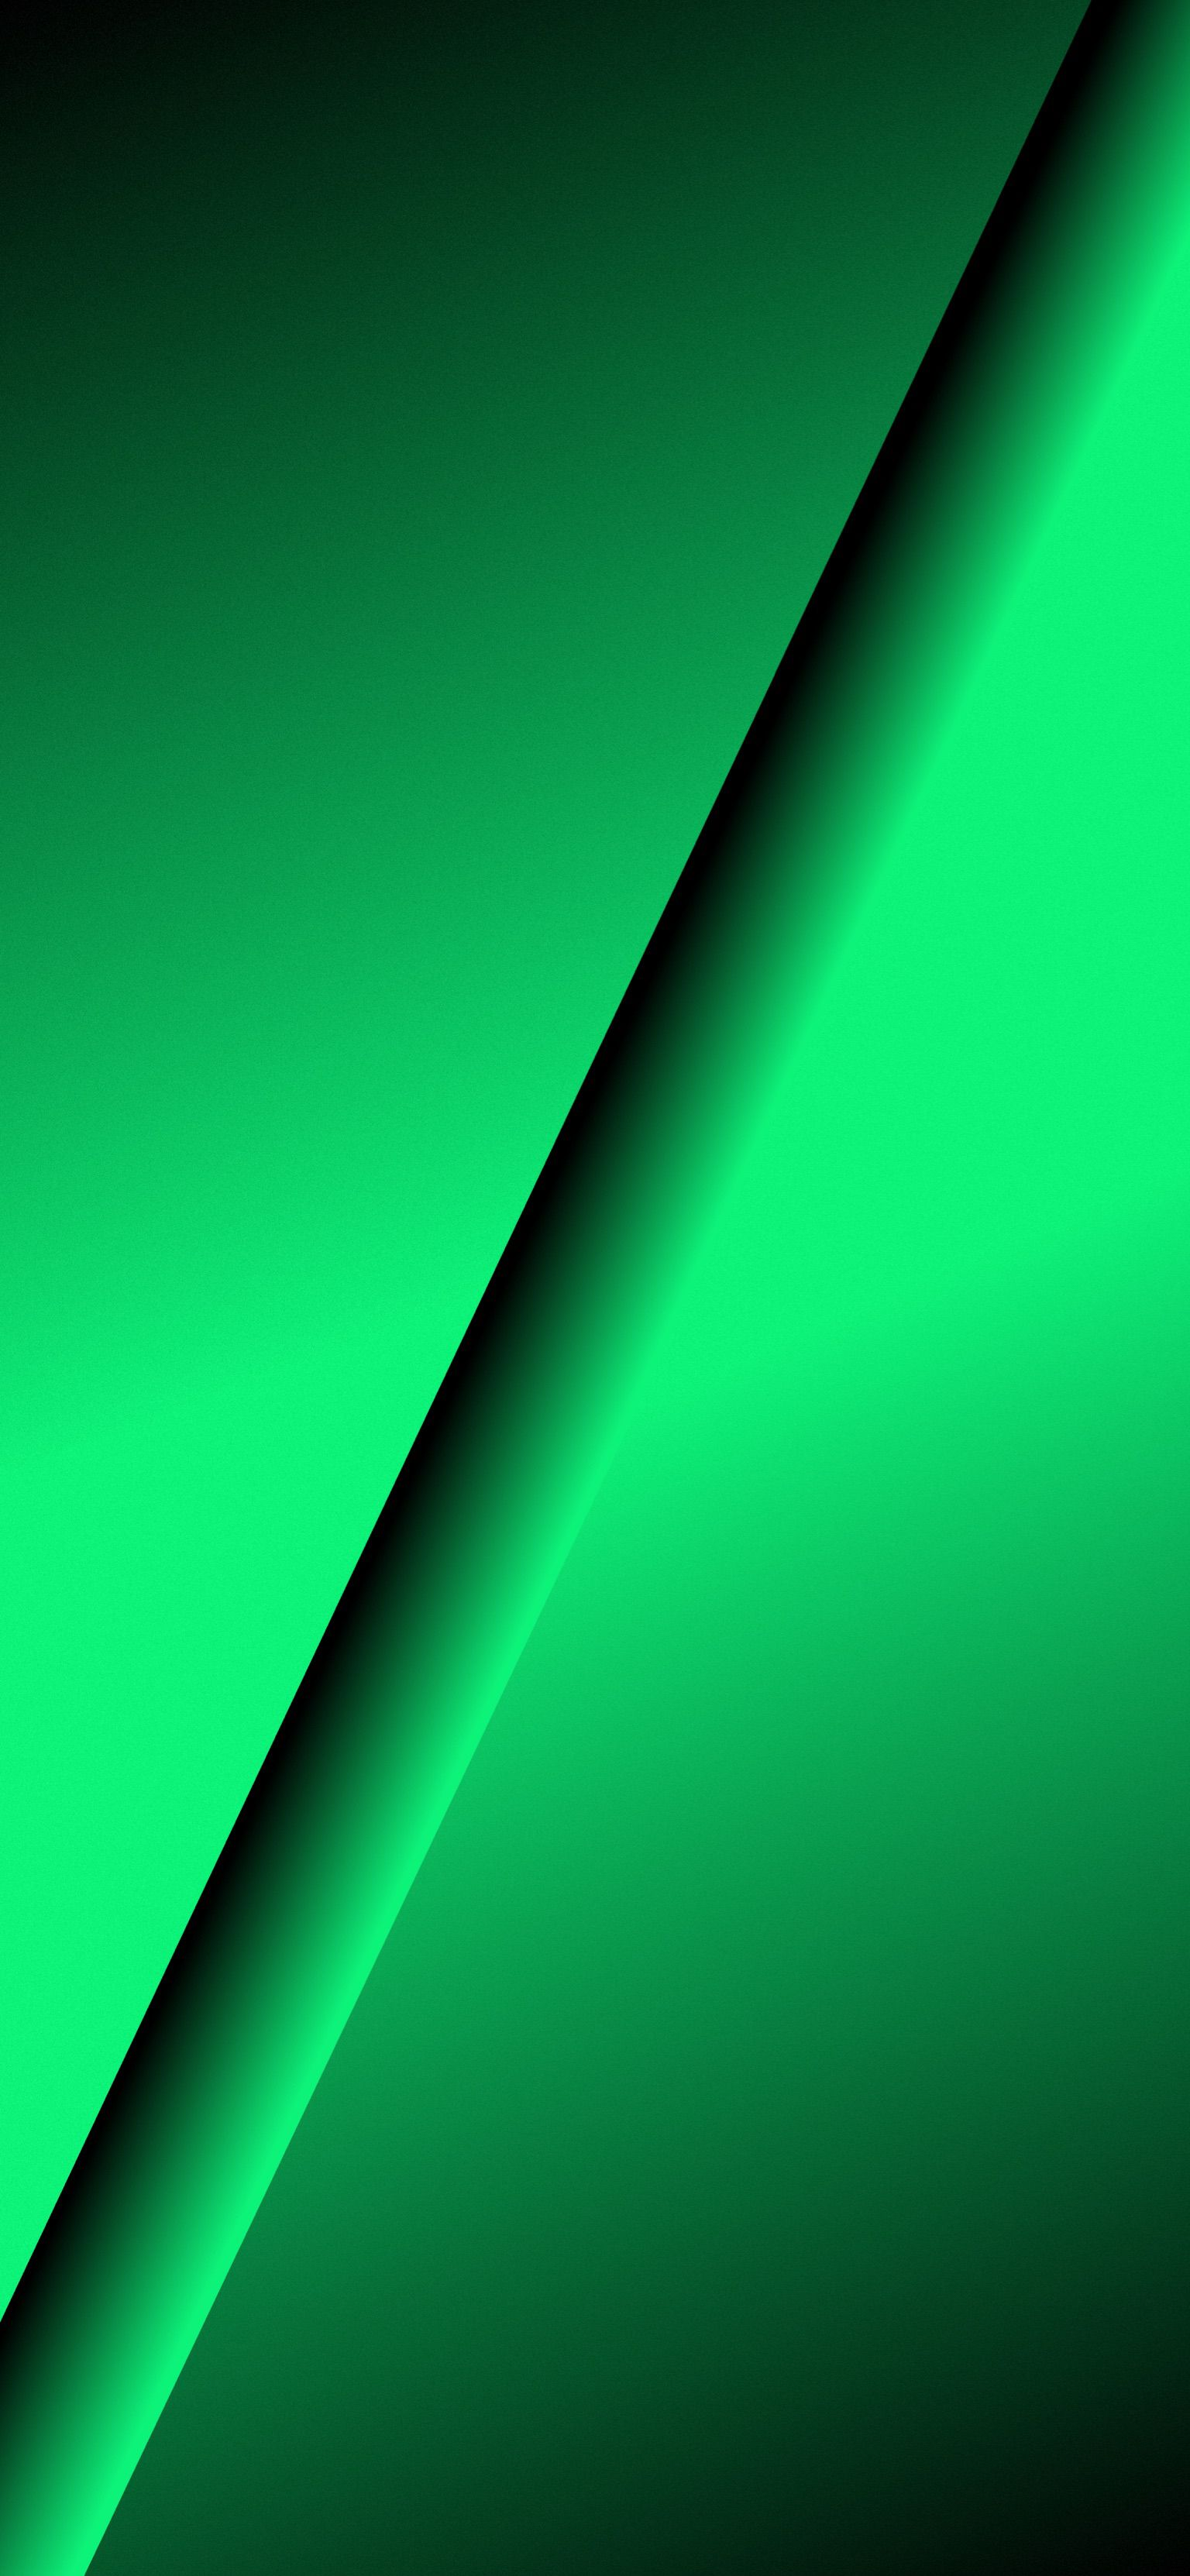 Green iPhone Wallpaper in 2019 Iphone background